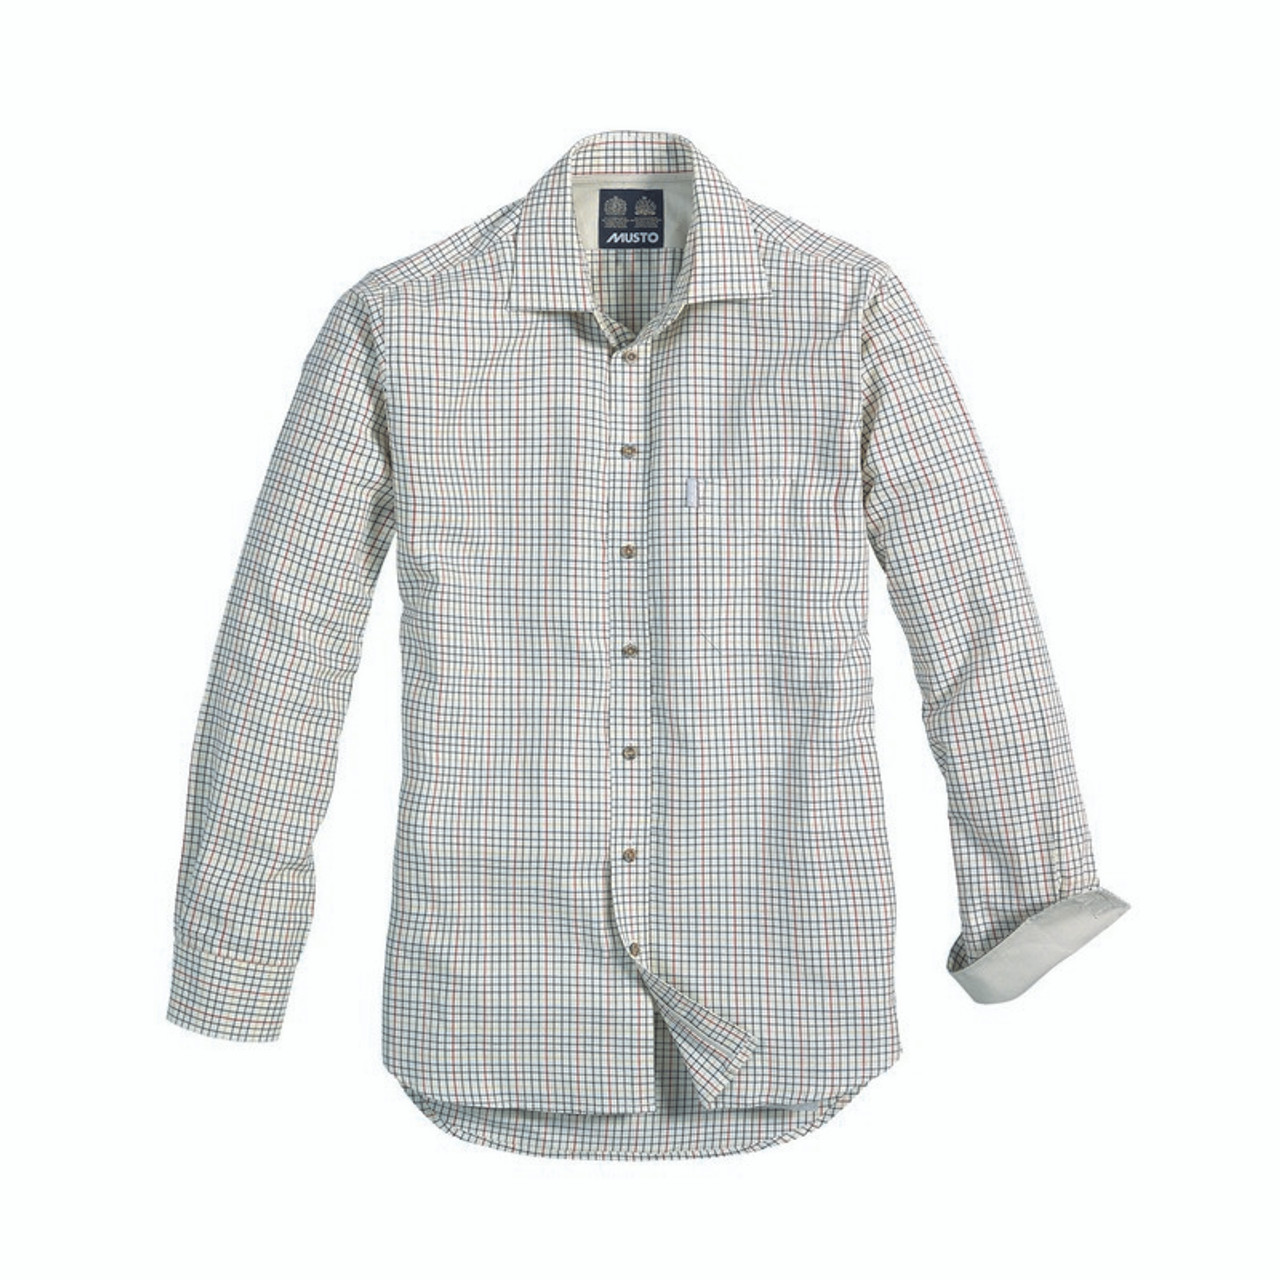 Best price for Musto Twill Check Shirt, Available in various colours, on sale from Bradford Stalker.